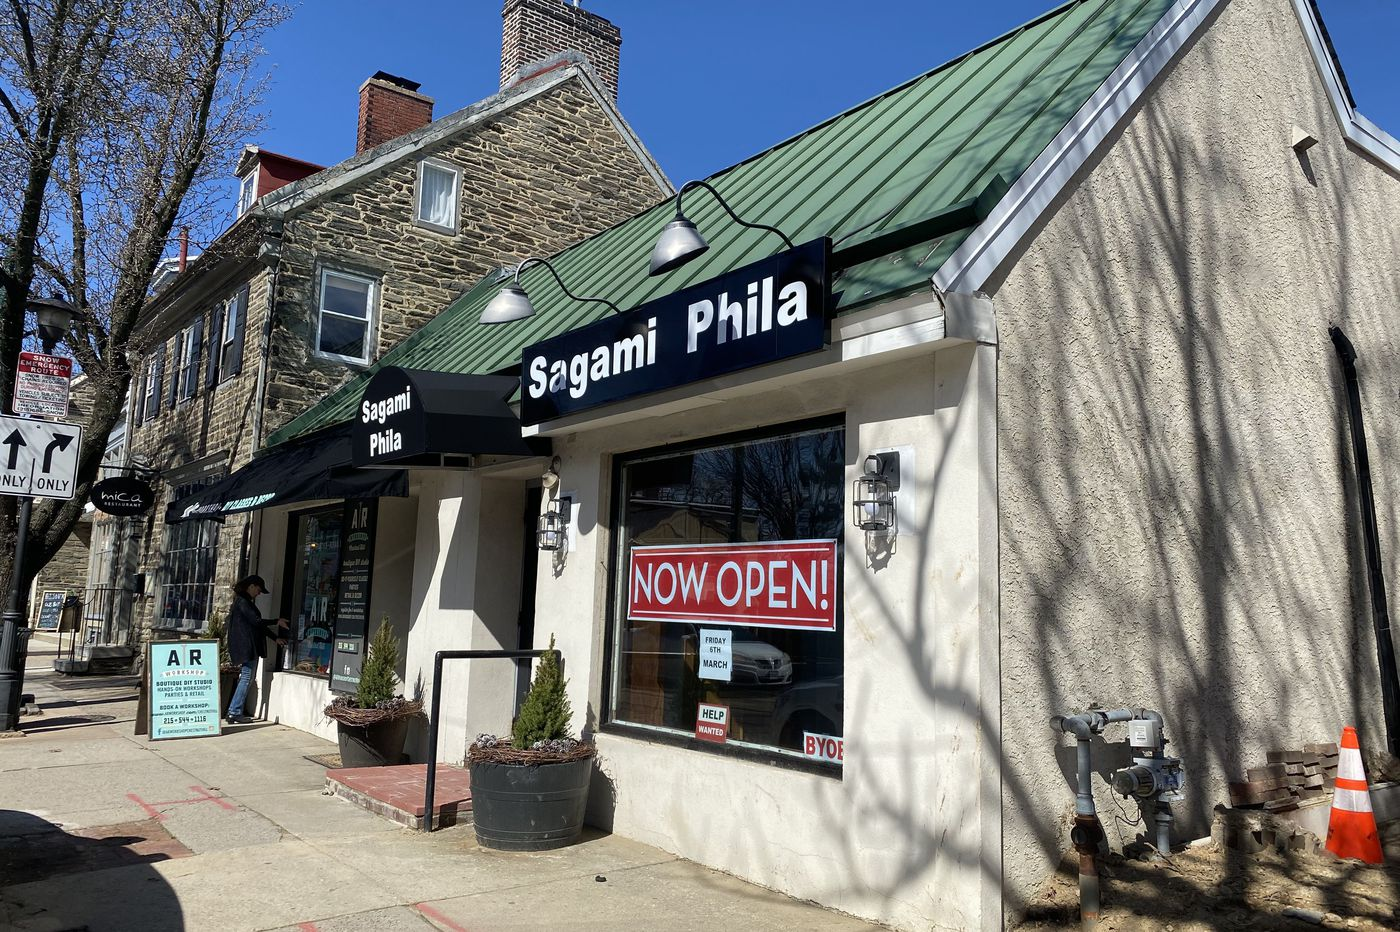 New Sagami Phila restaurant in Chestnut Hill appears to have links to Osaka, which was in legal hot water